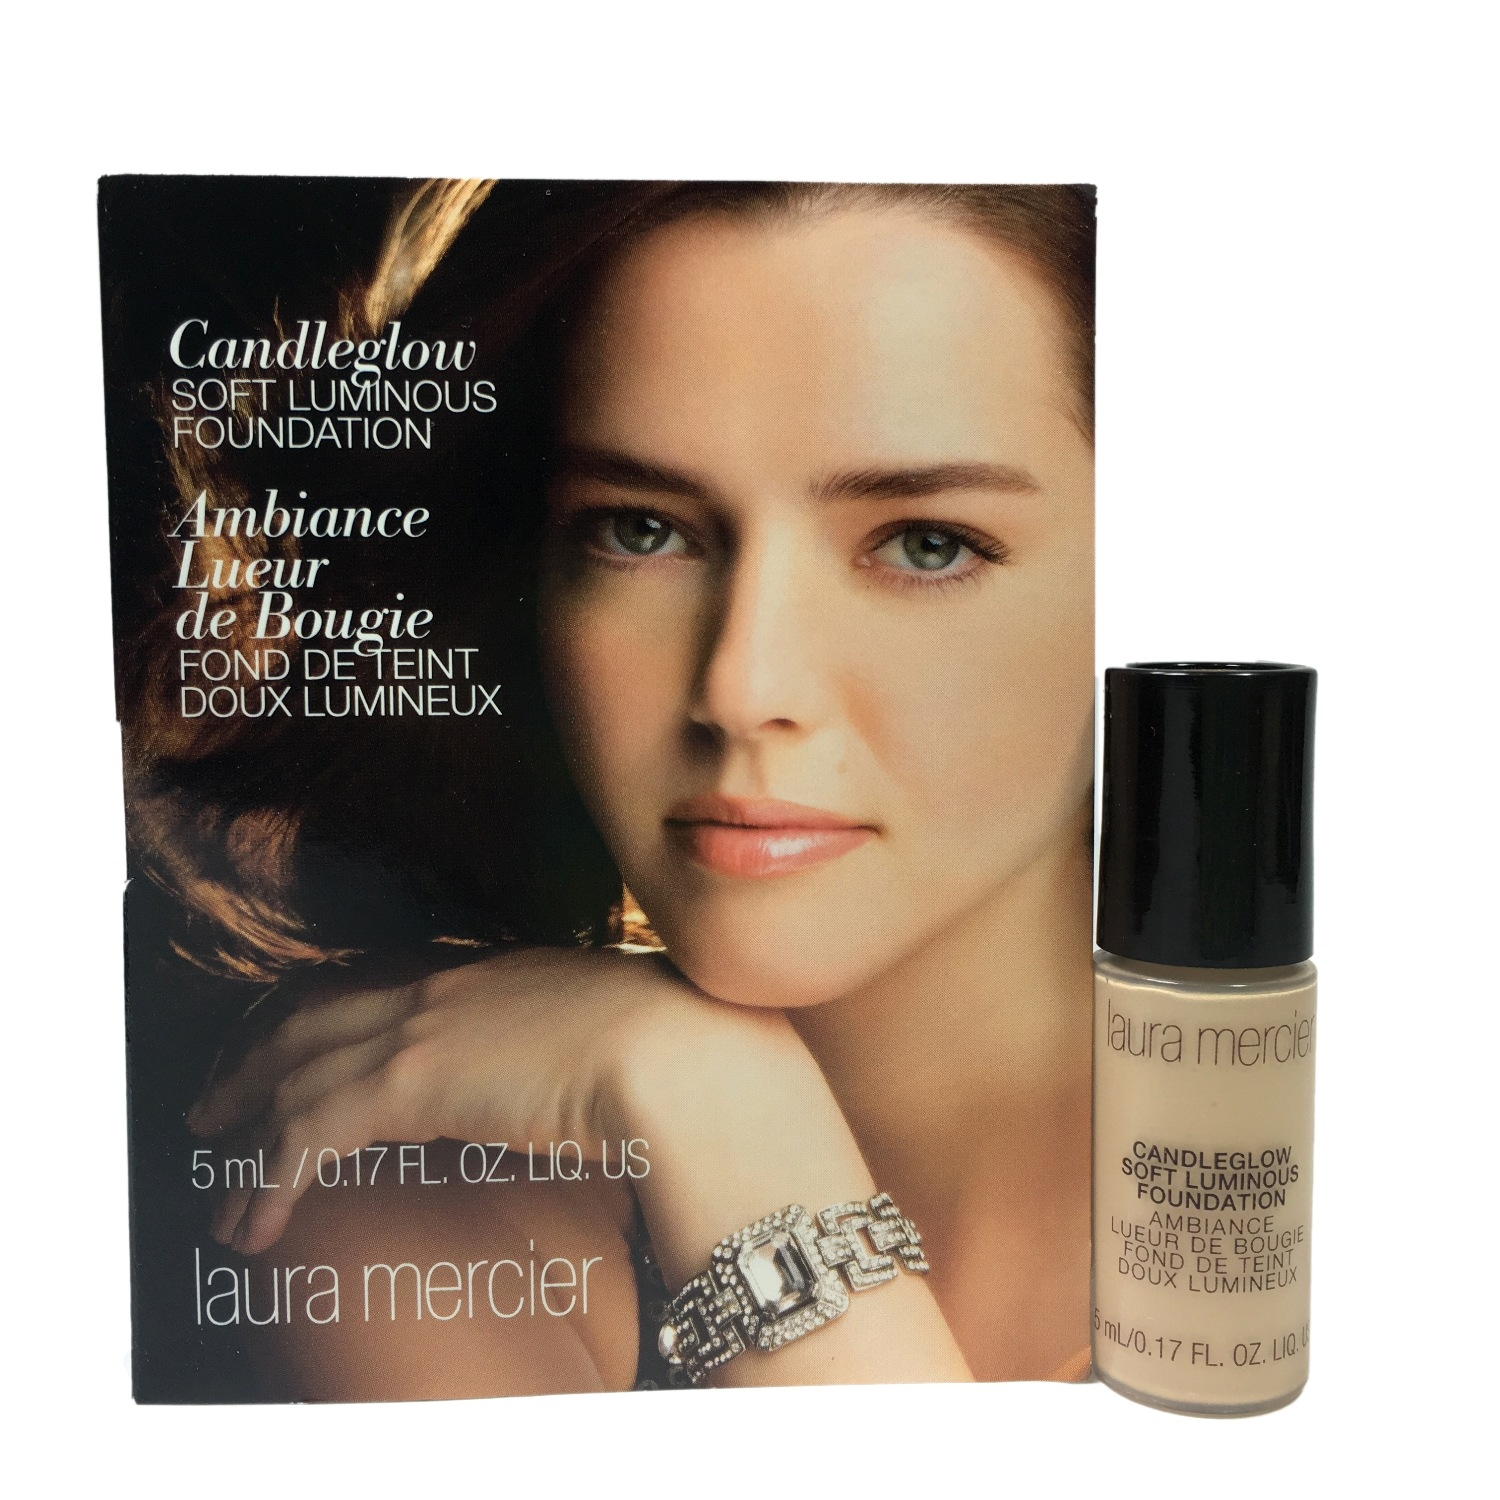 Laura Mercier Candleglow Soft Luminous Foundation 5ml. #Vanilee สำหรับผิวขาวเหลือง